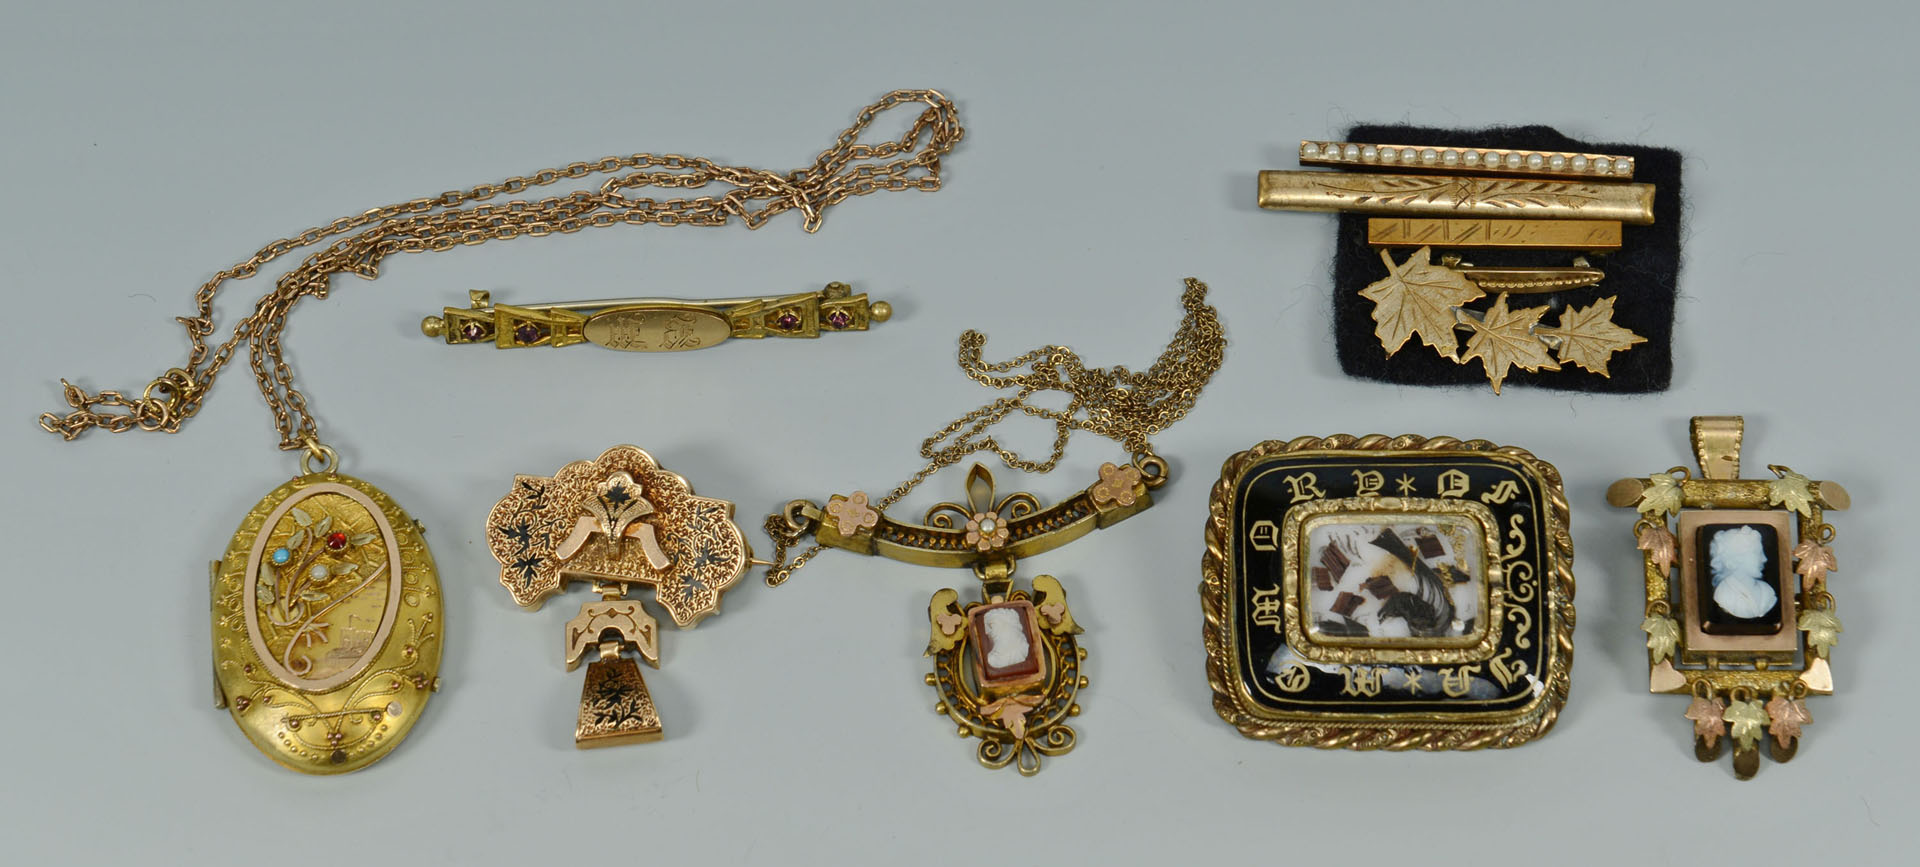 Lot 744: 11 pcs Victorian & Mourning Jewelry inc. cameos